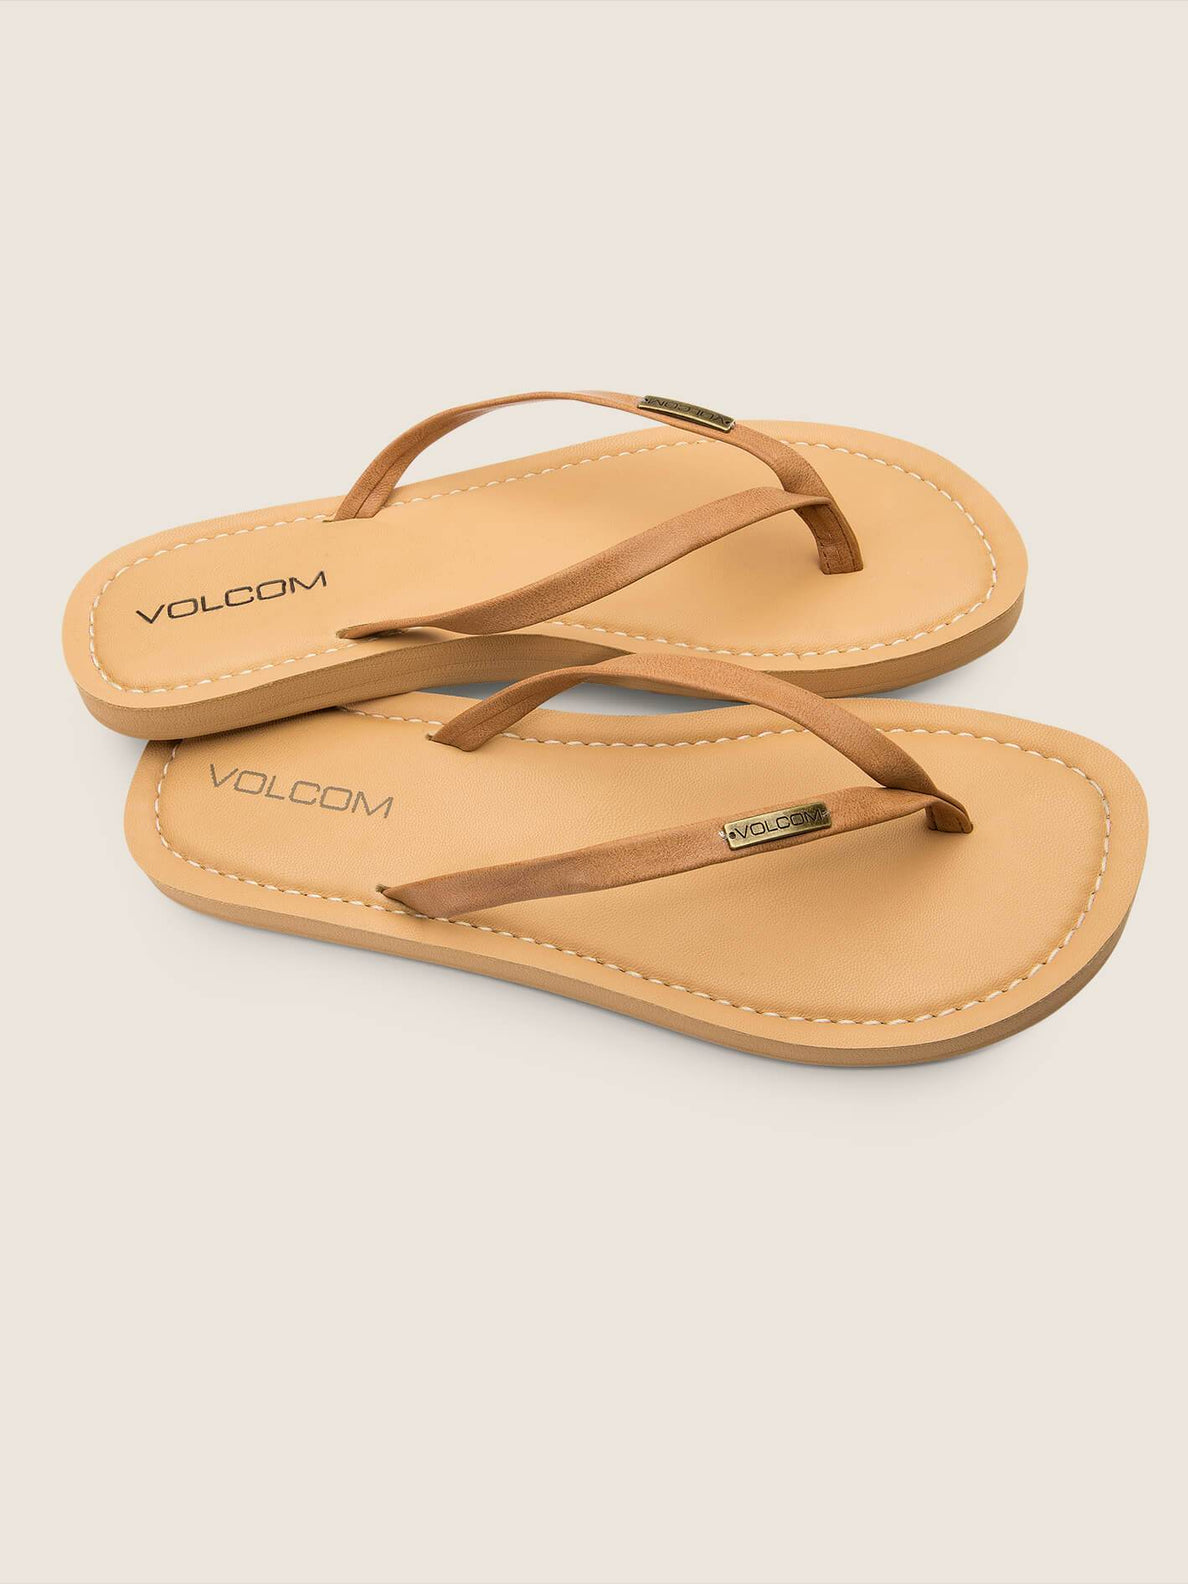 Lagos Sandals In Tan, Front View